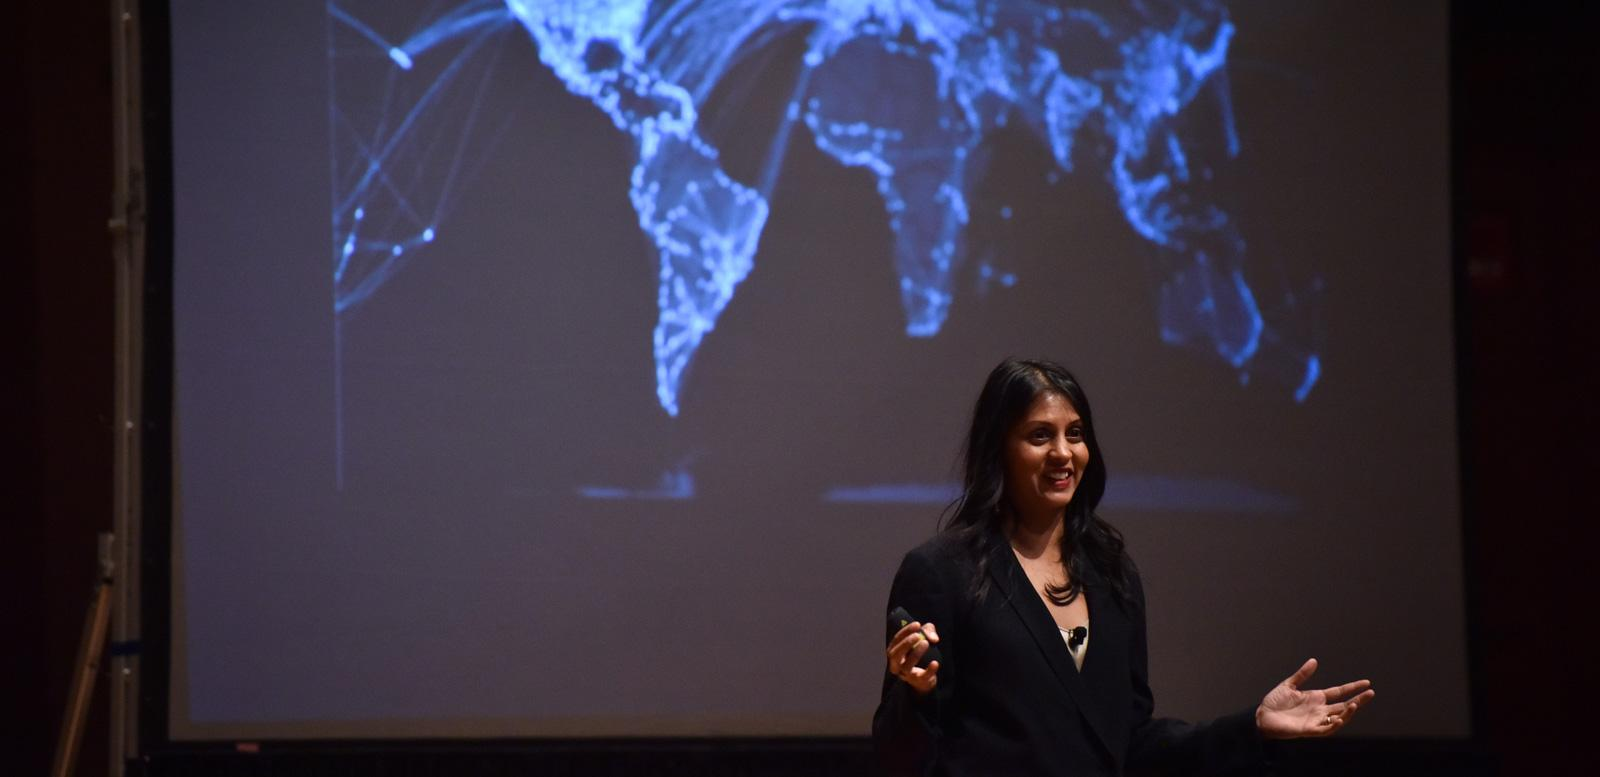 A woman gives a presentation in front of a large screen showing a map of the world's continents.